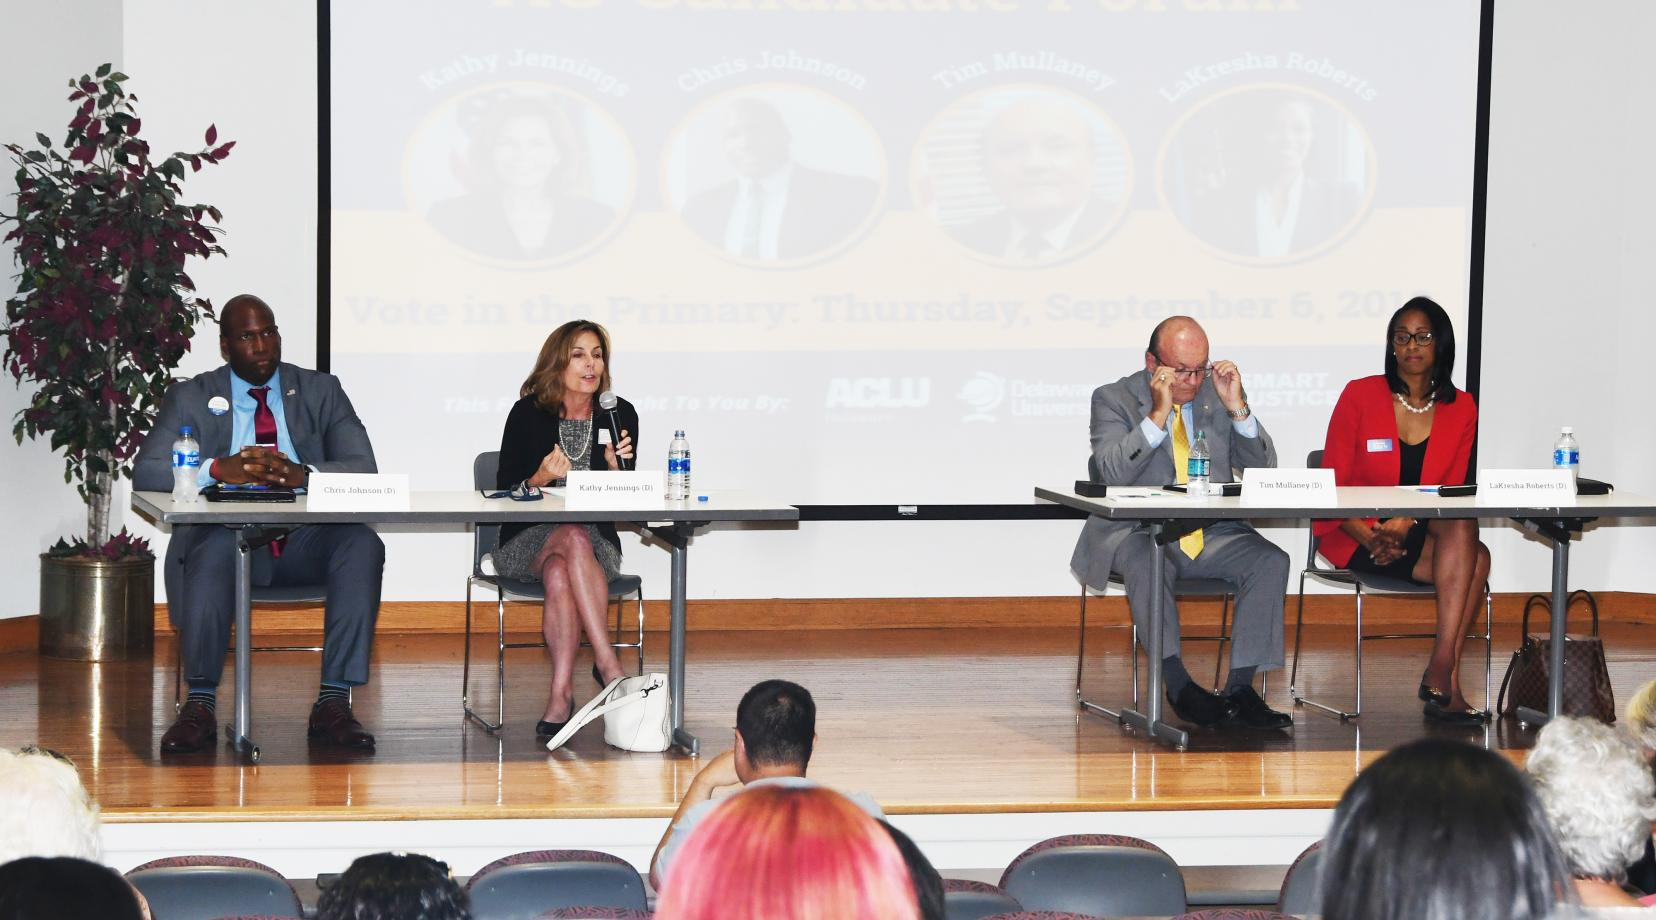 Democratic Attorney General candidates (l-r) Chris Johnson, Kathy Jennings, Tim Mullaney and LaKresha Roberts shared their views on mass incarceration and other criminal justice system issues during the ACLU's AG Forum held at DSU on Aug. 29.